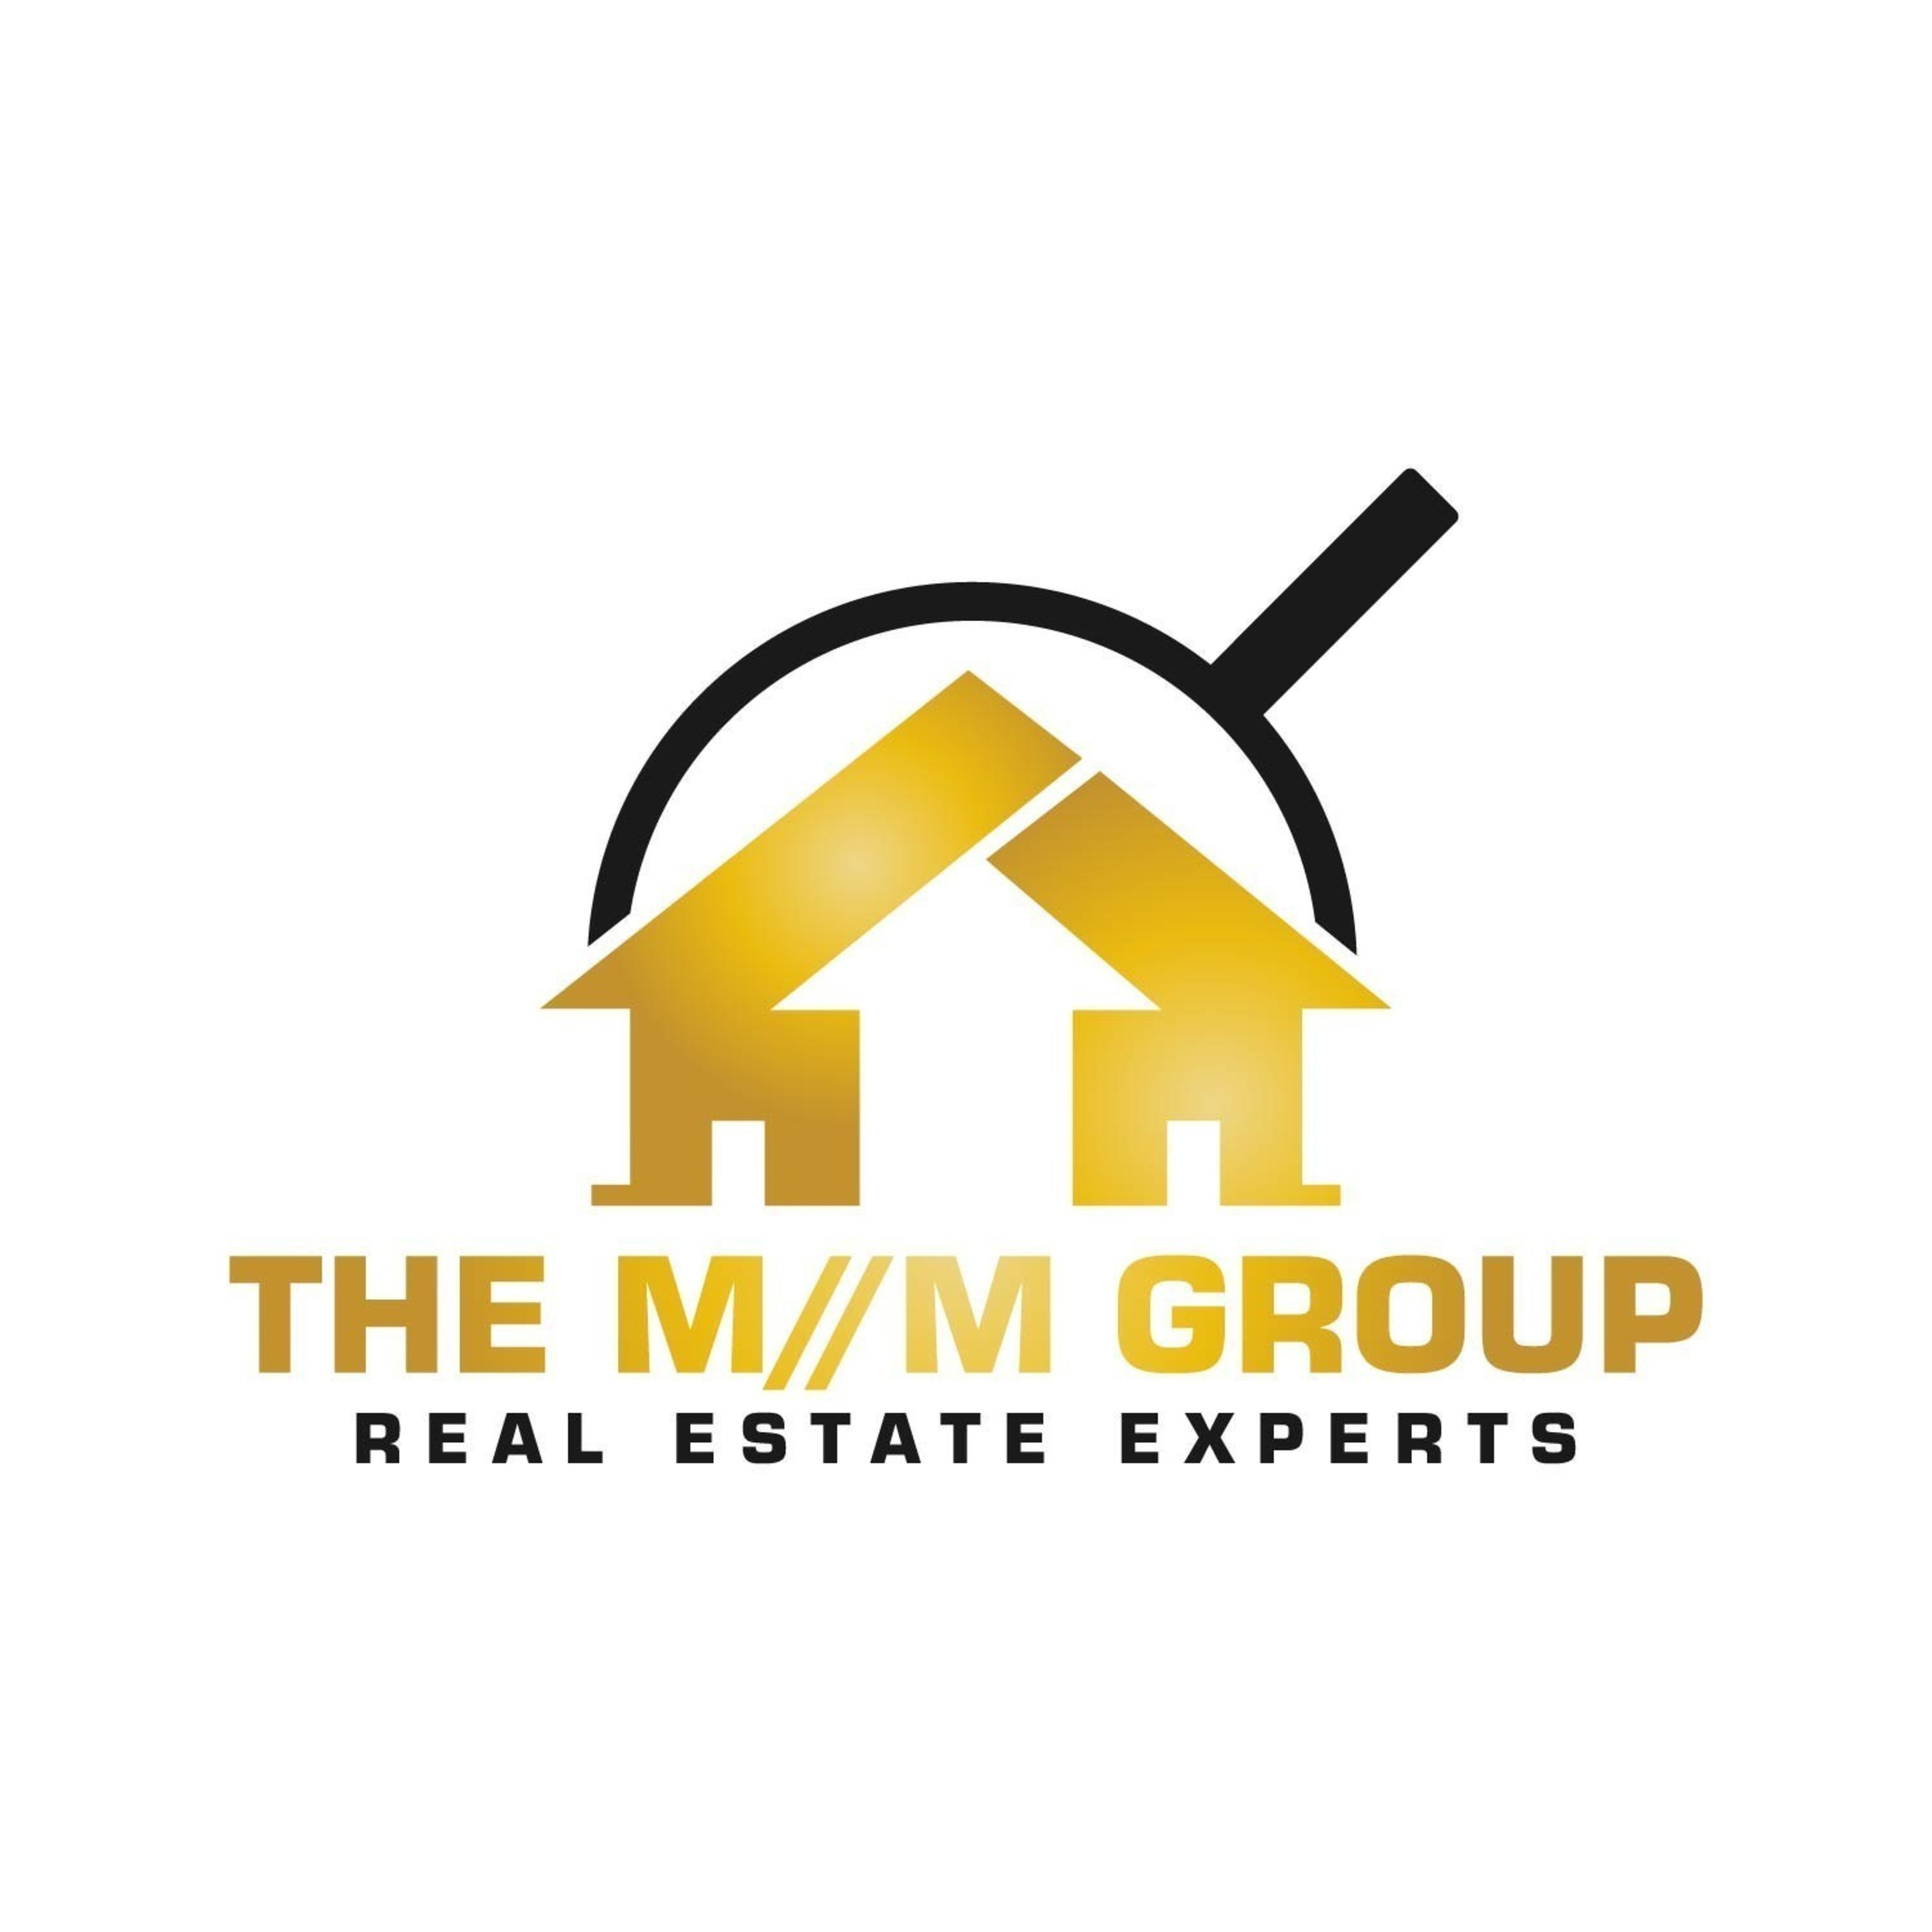 Eduardo Masferre and THE M//M GROUP Real Estate Experts, a Different Kind of Company